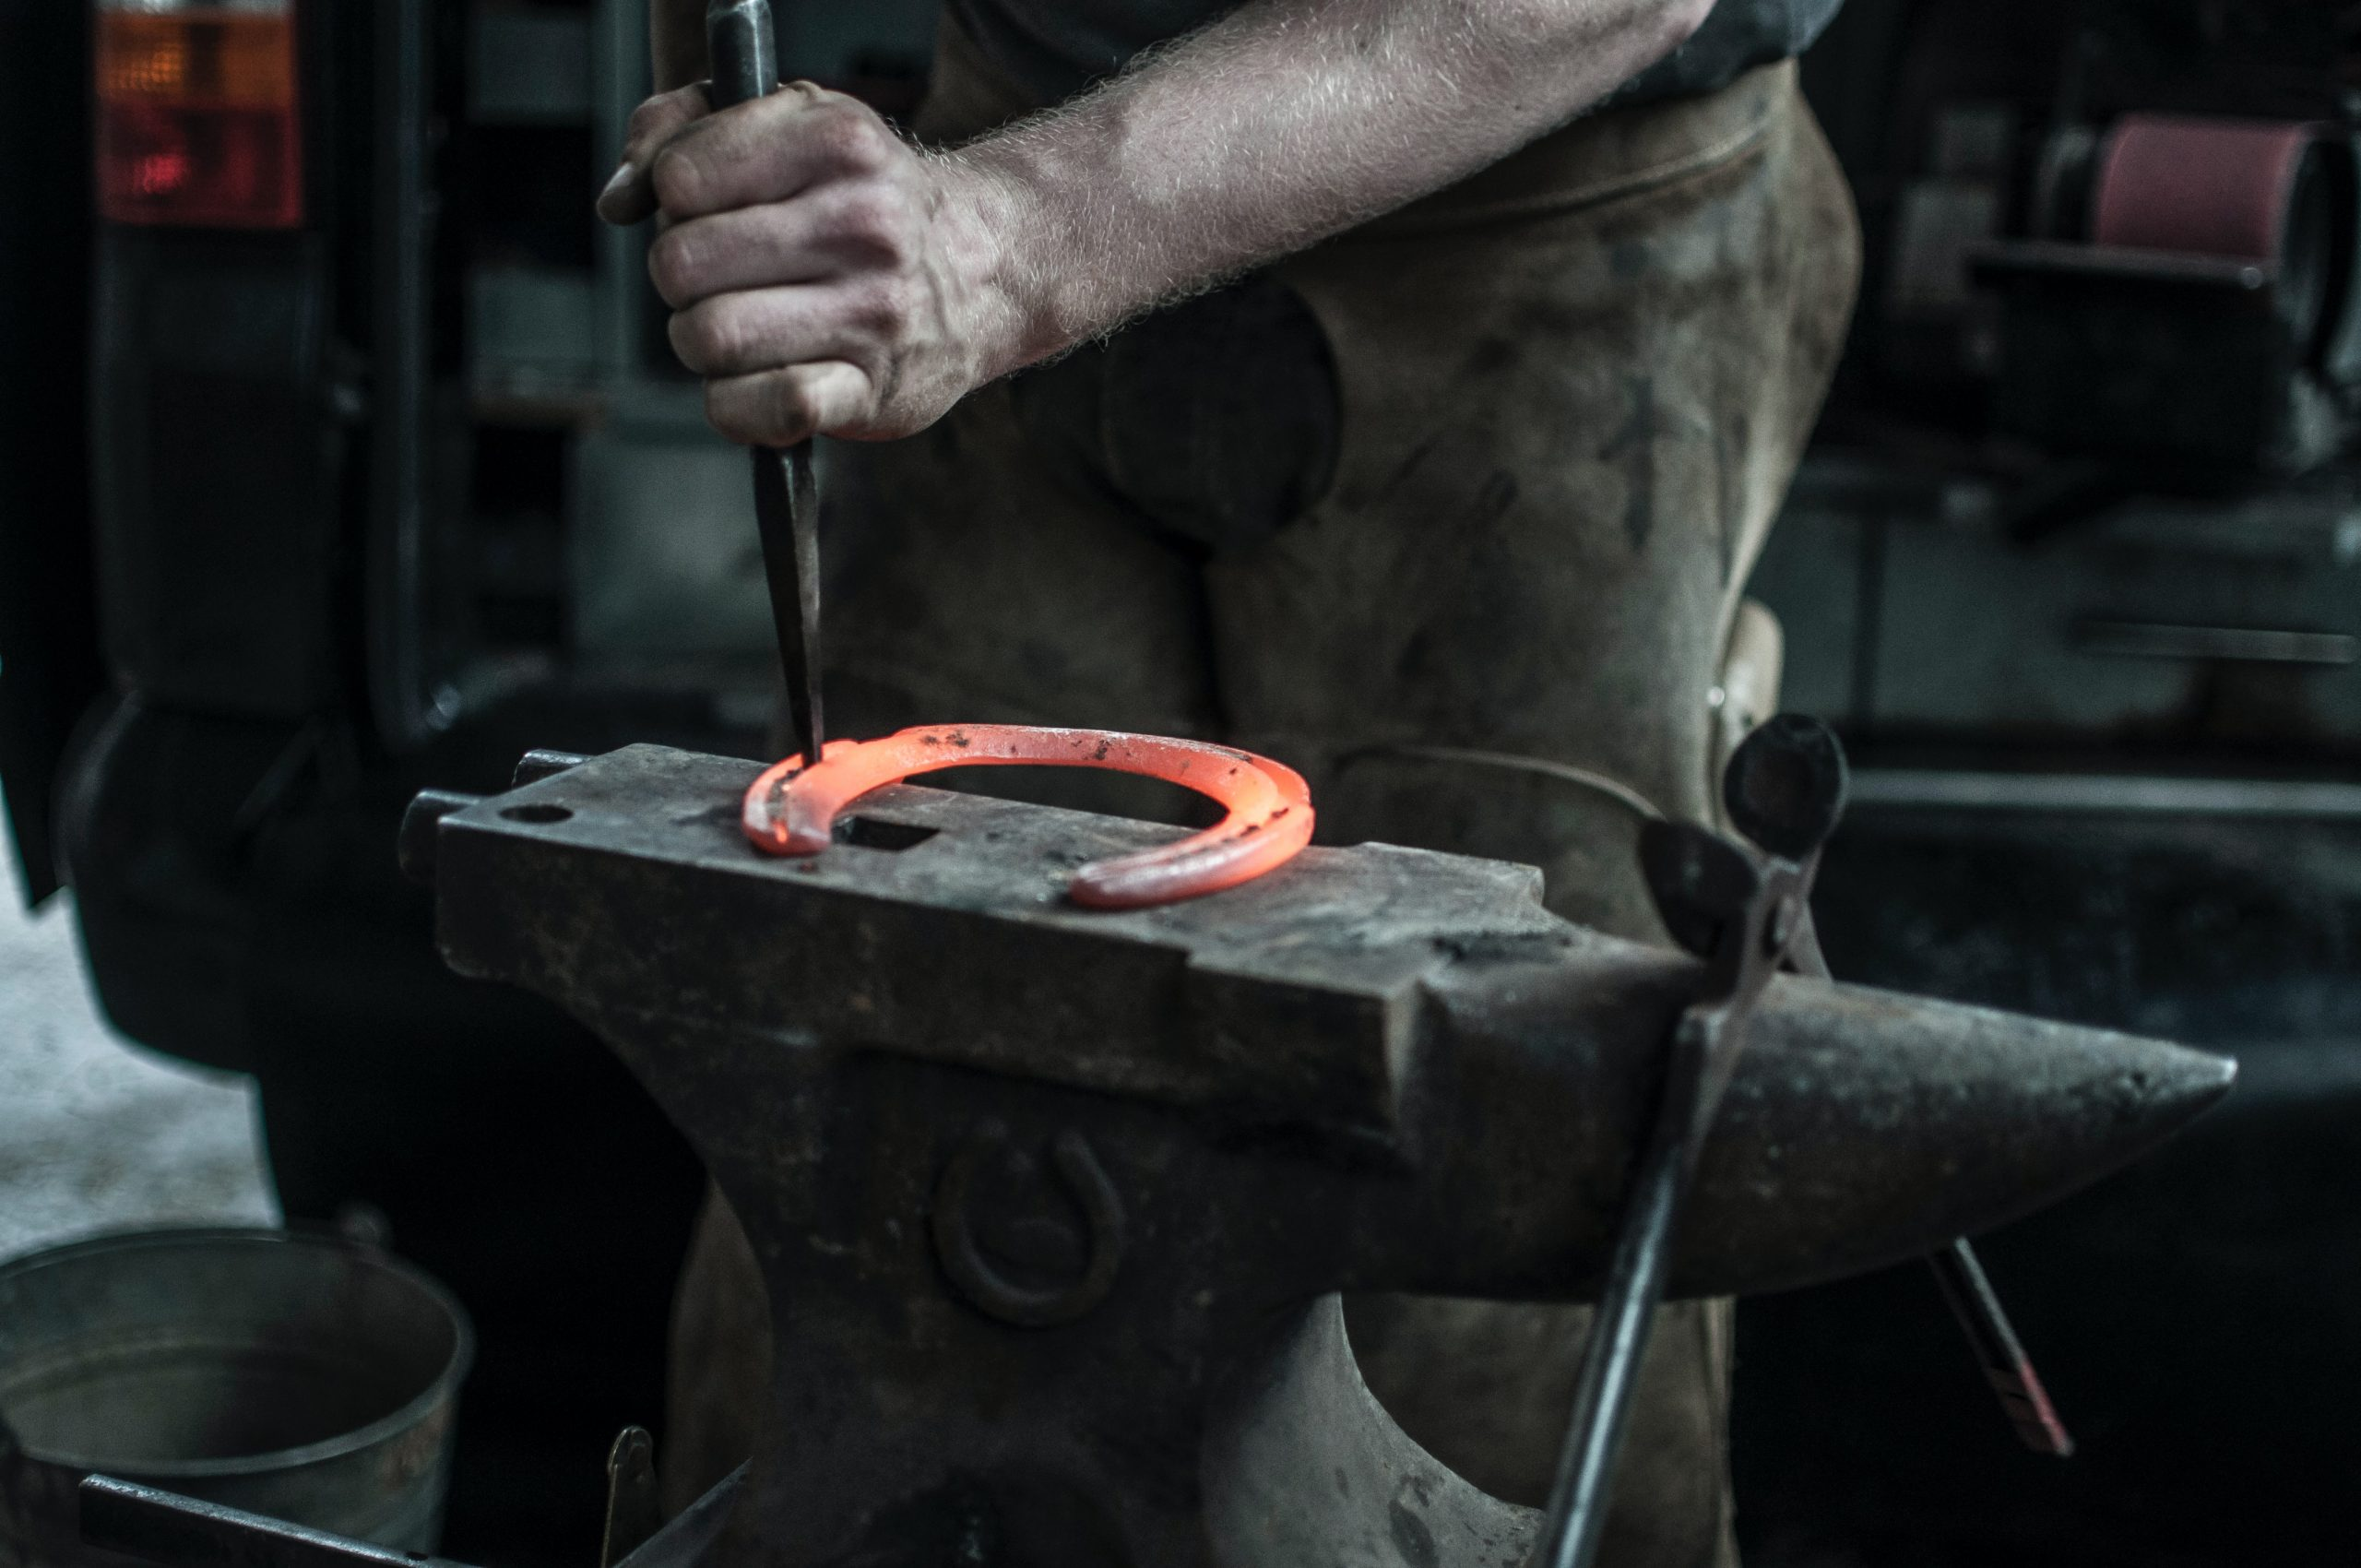 Strike while the iron is hot to benefit from the Public Sector Decarbonisation Scheme